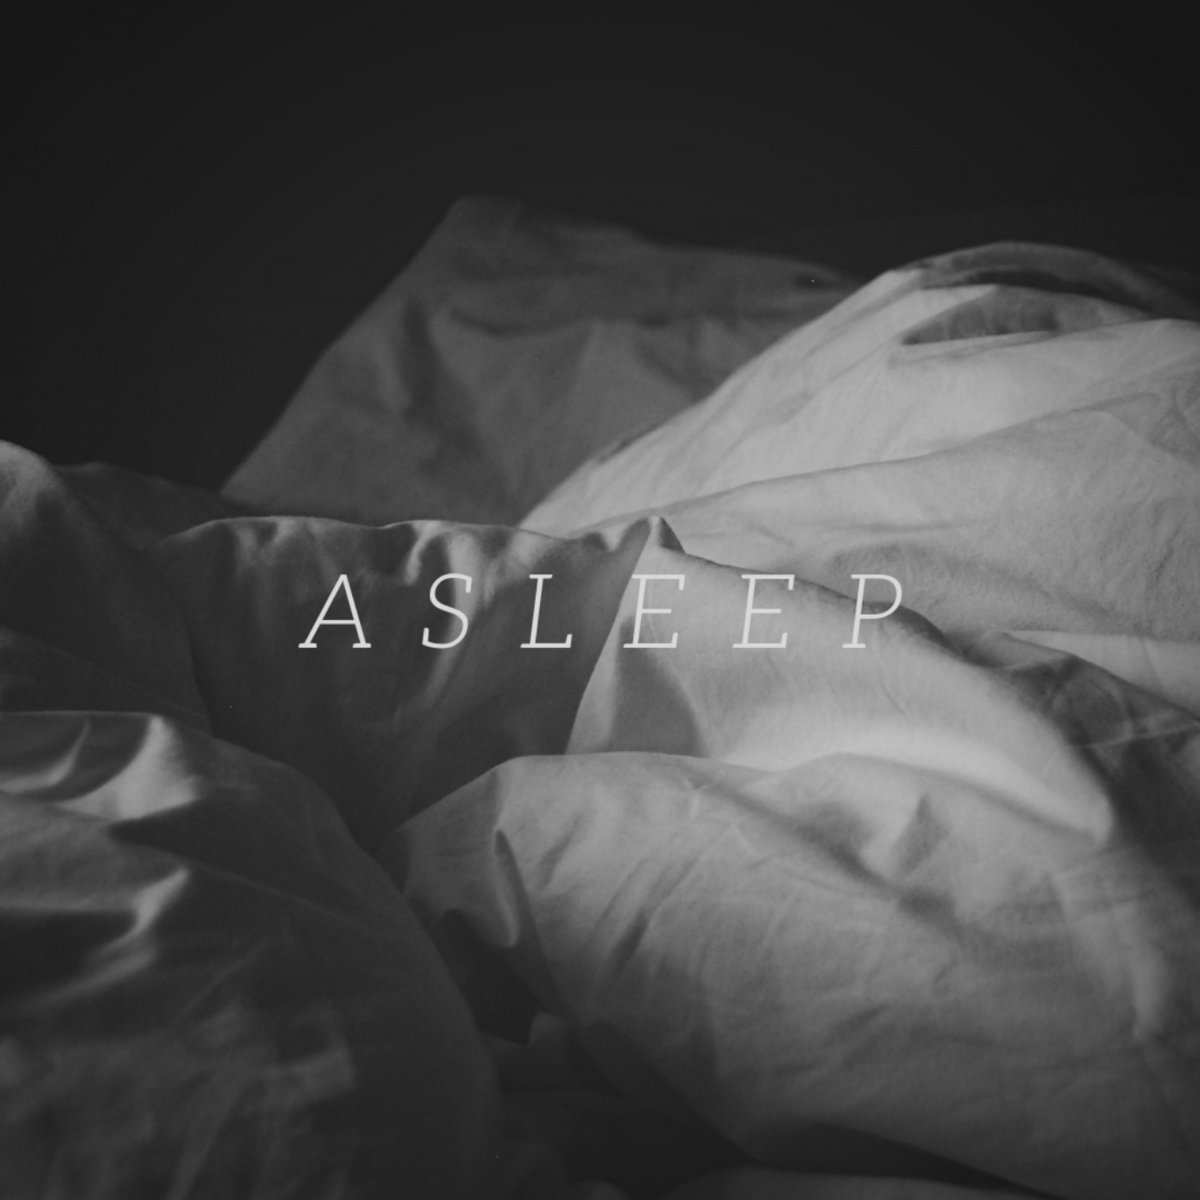 asleep by the smiths free mp3 download